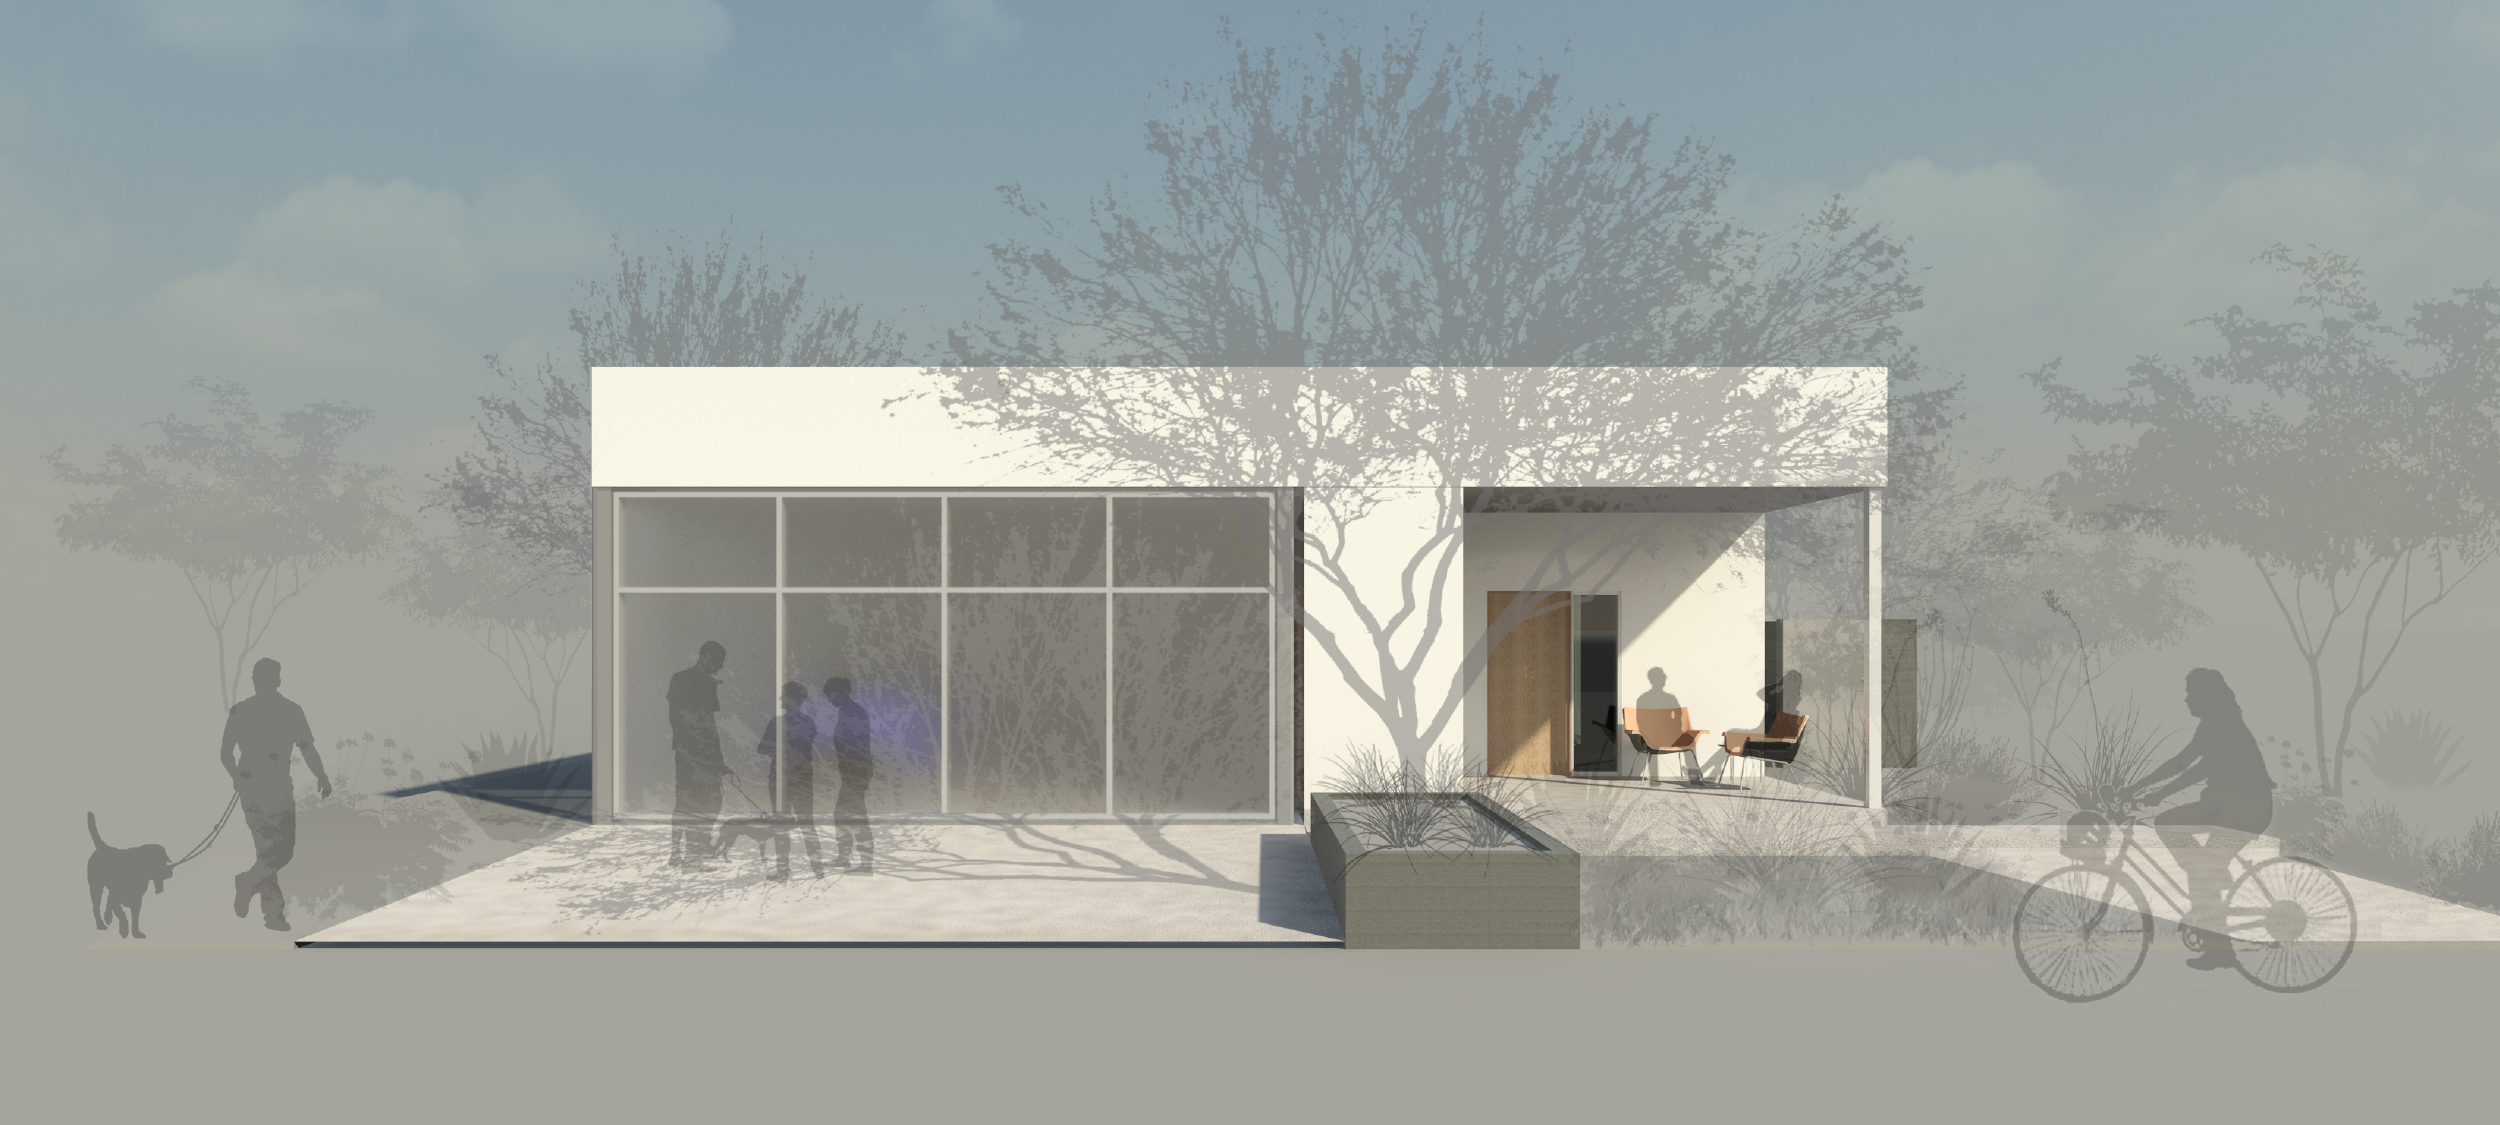 Meet HOMEnz: Winner of Phoenix's Sustainable Home Design Competition – Pt. 1